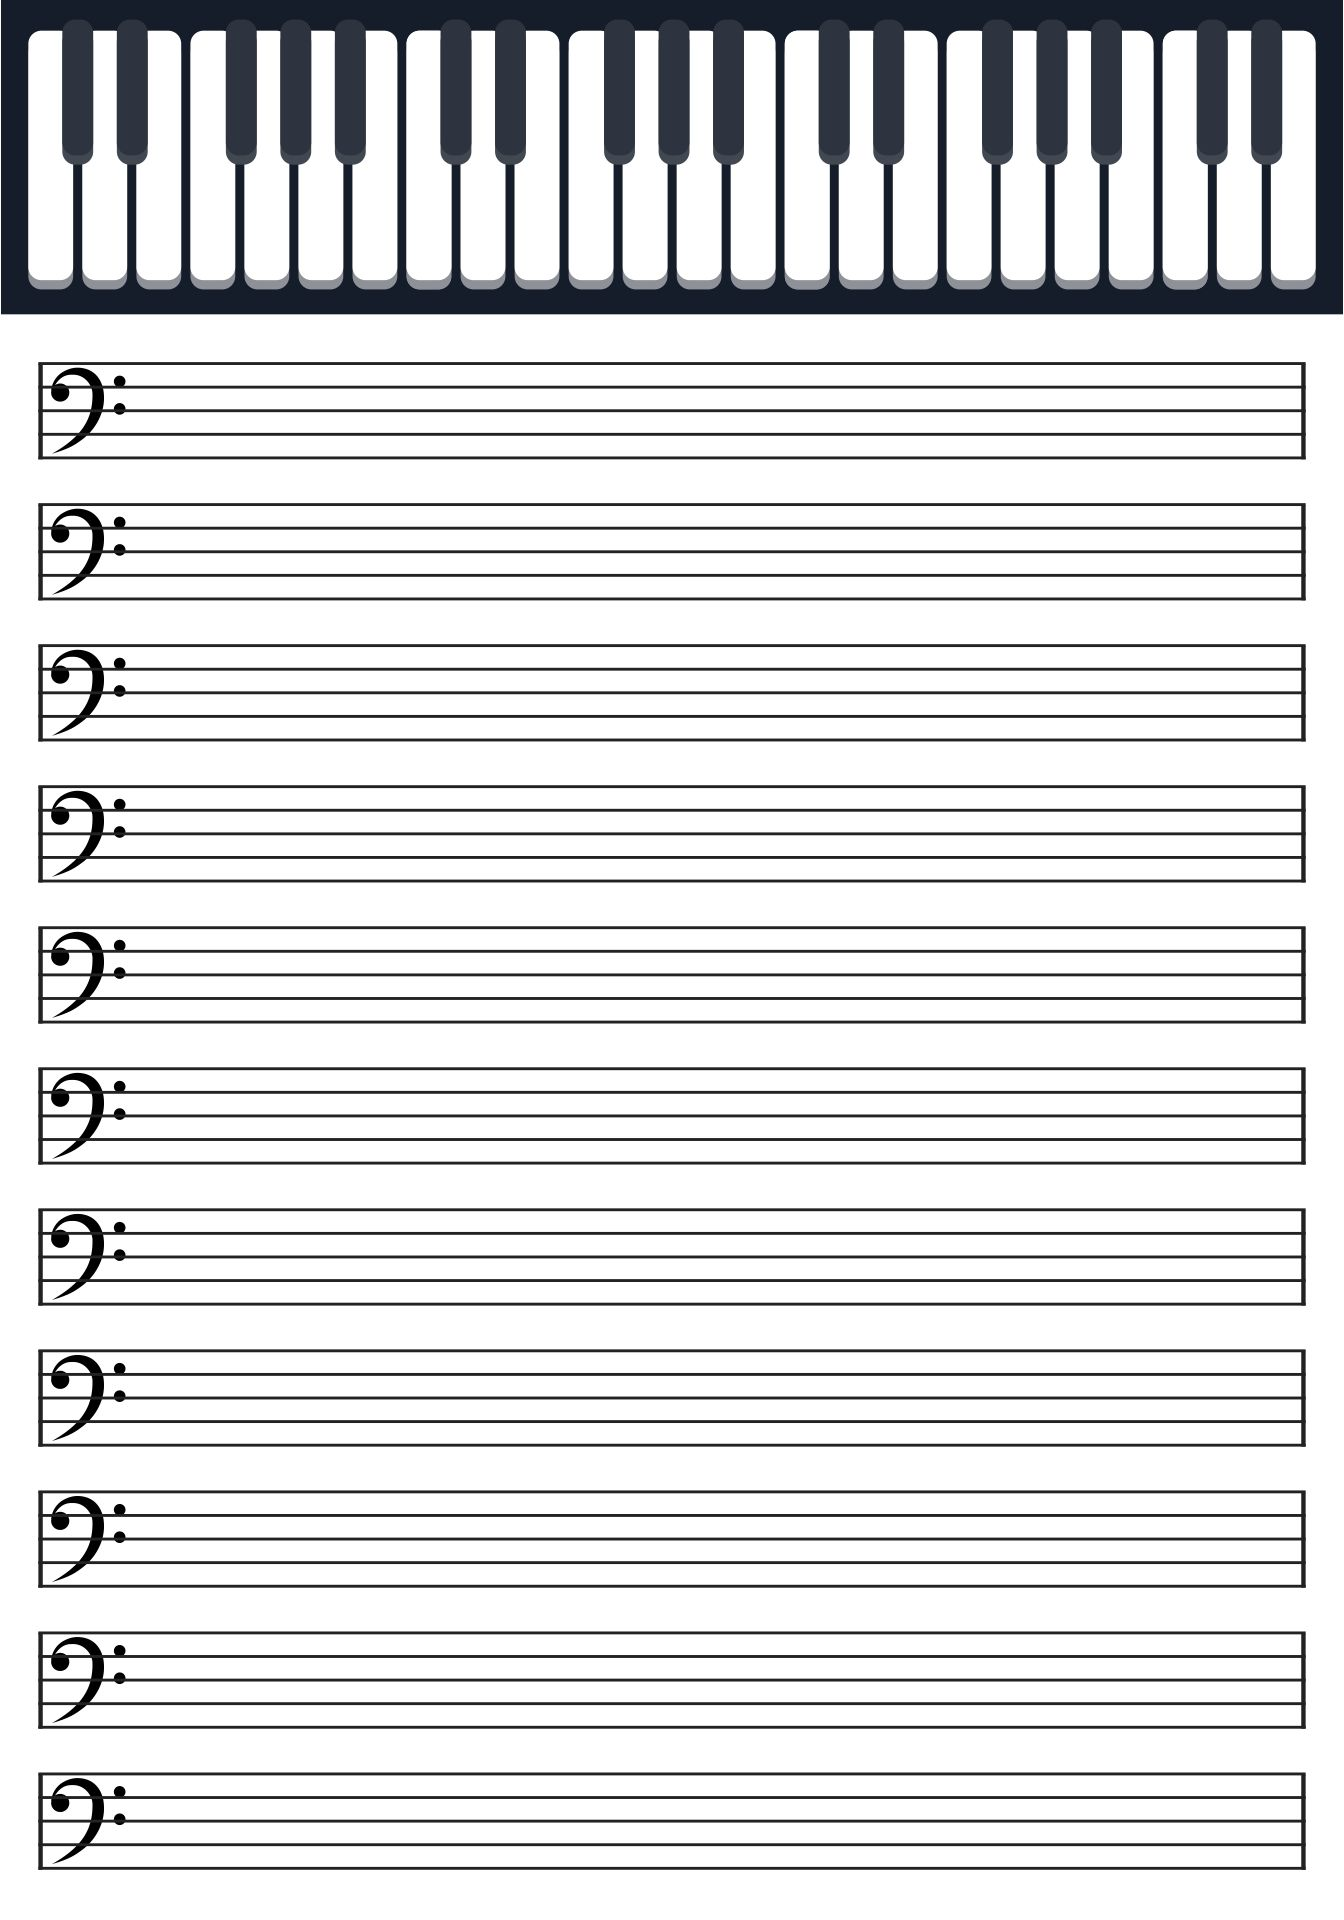 Printable Blank Piano Sheet Music